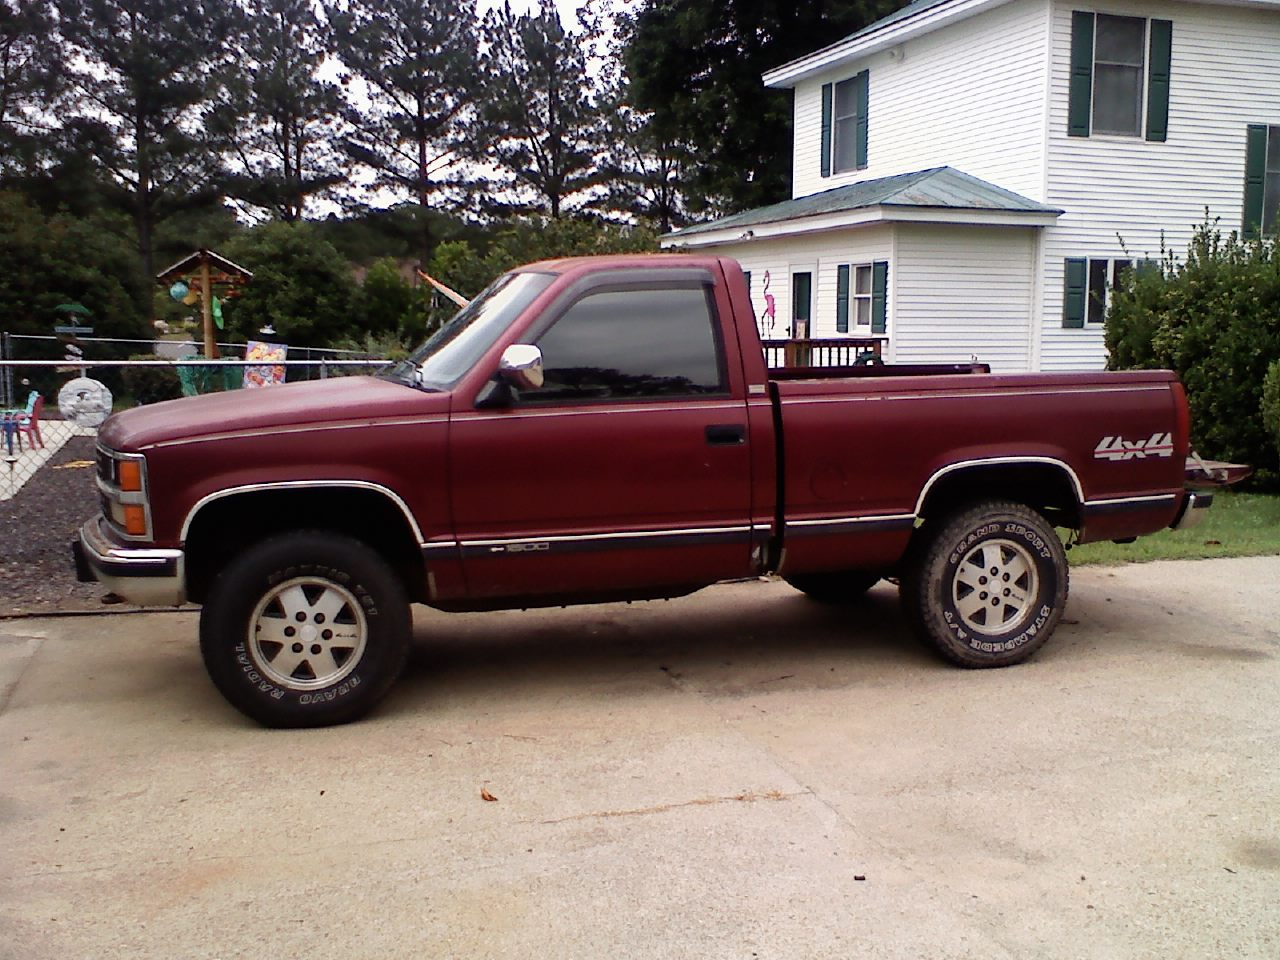 Bigtaylor8 1988 Chevrolet Silverado 1500 Regular Cab Specs Photos Modification Info At Cardomain